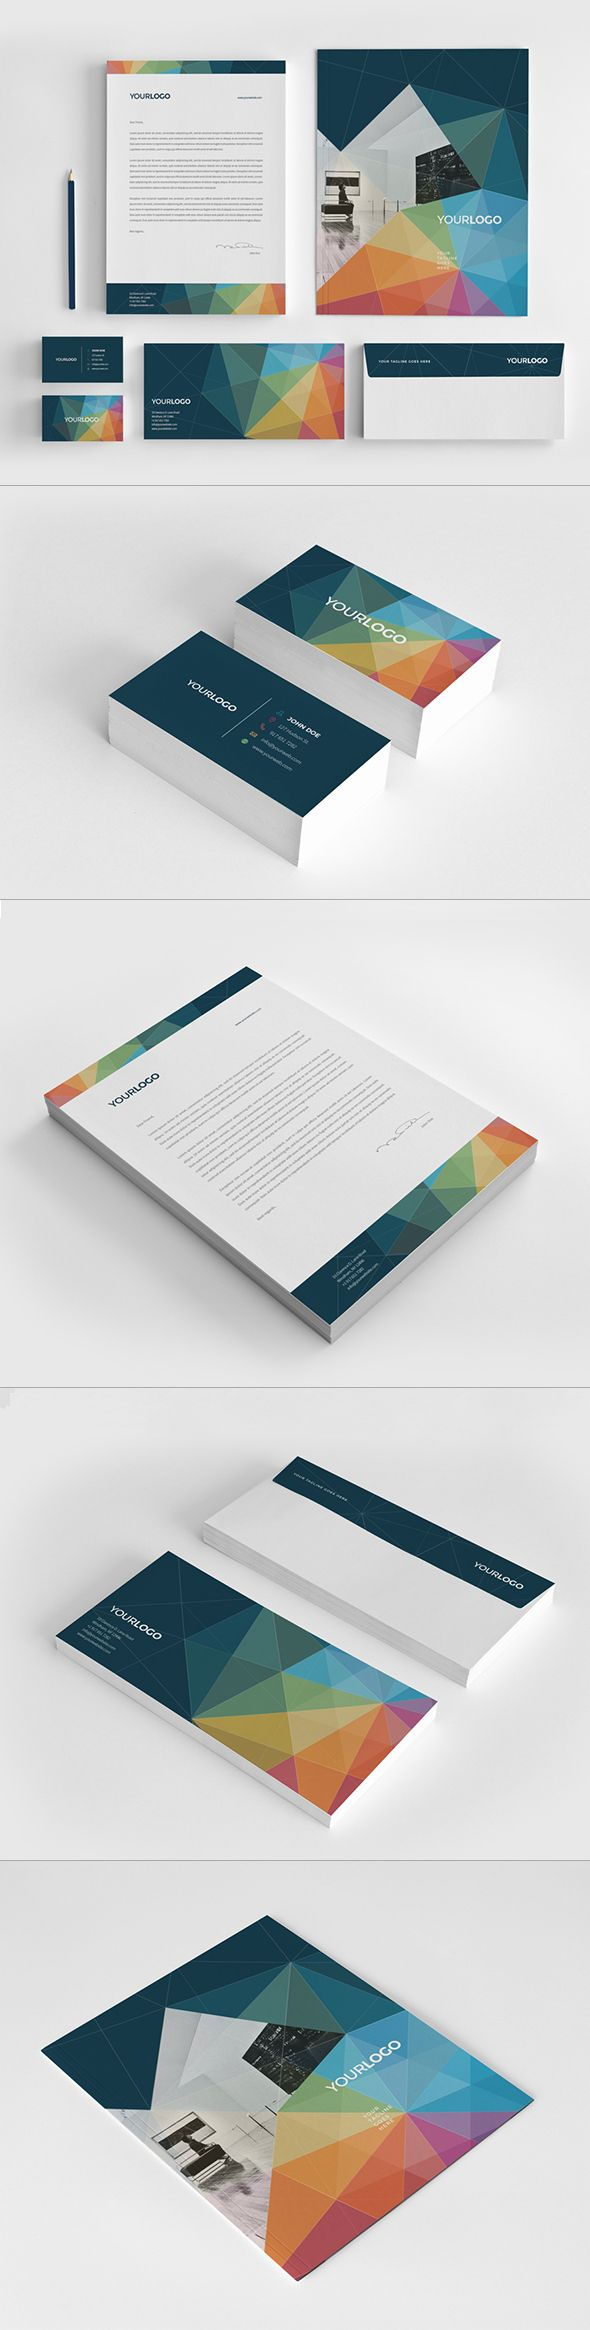 Multicolor Modern Stationery Pack on Behance